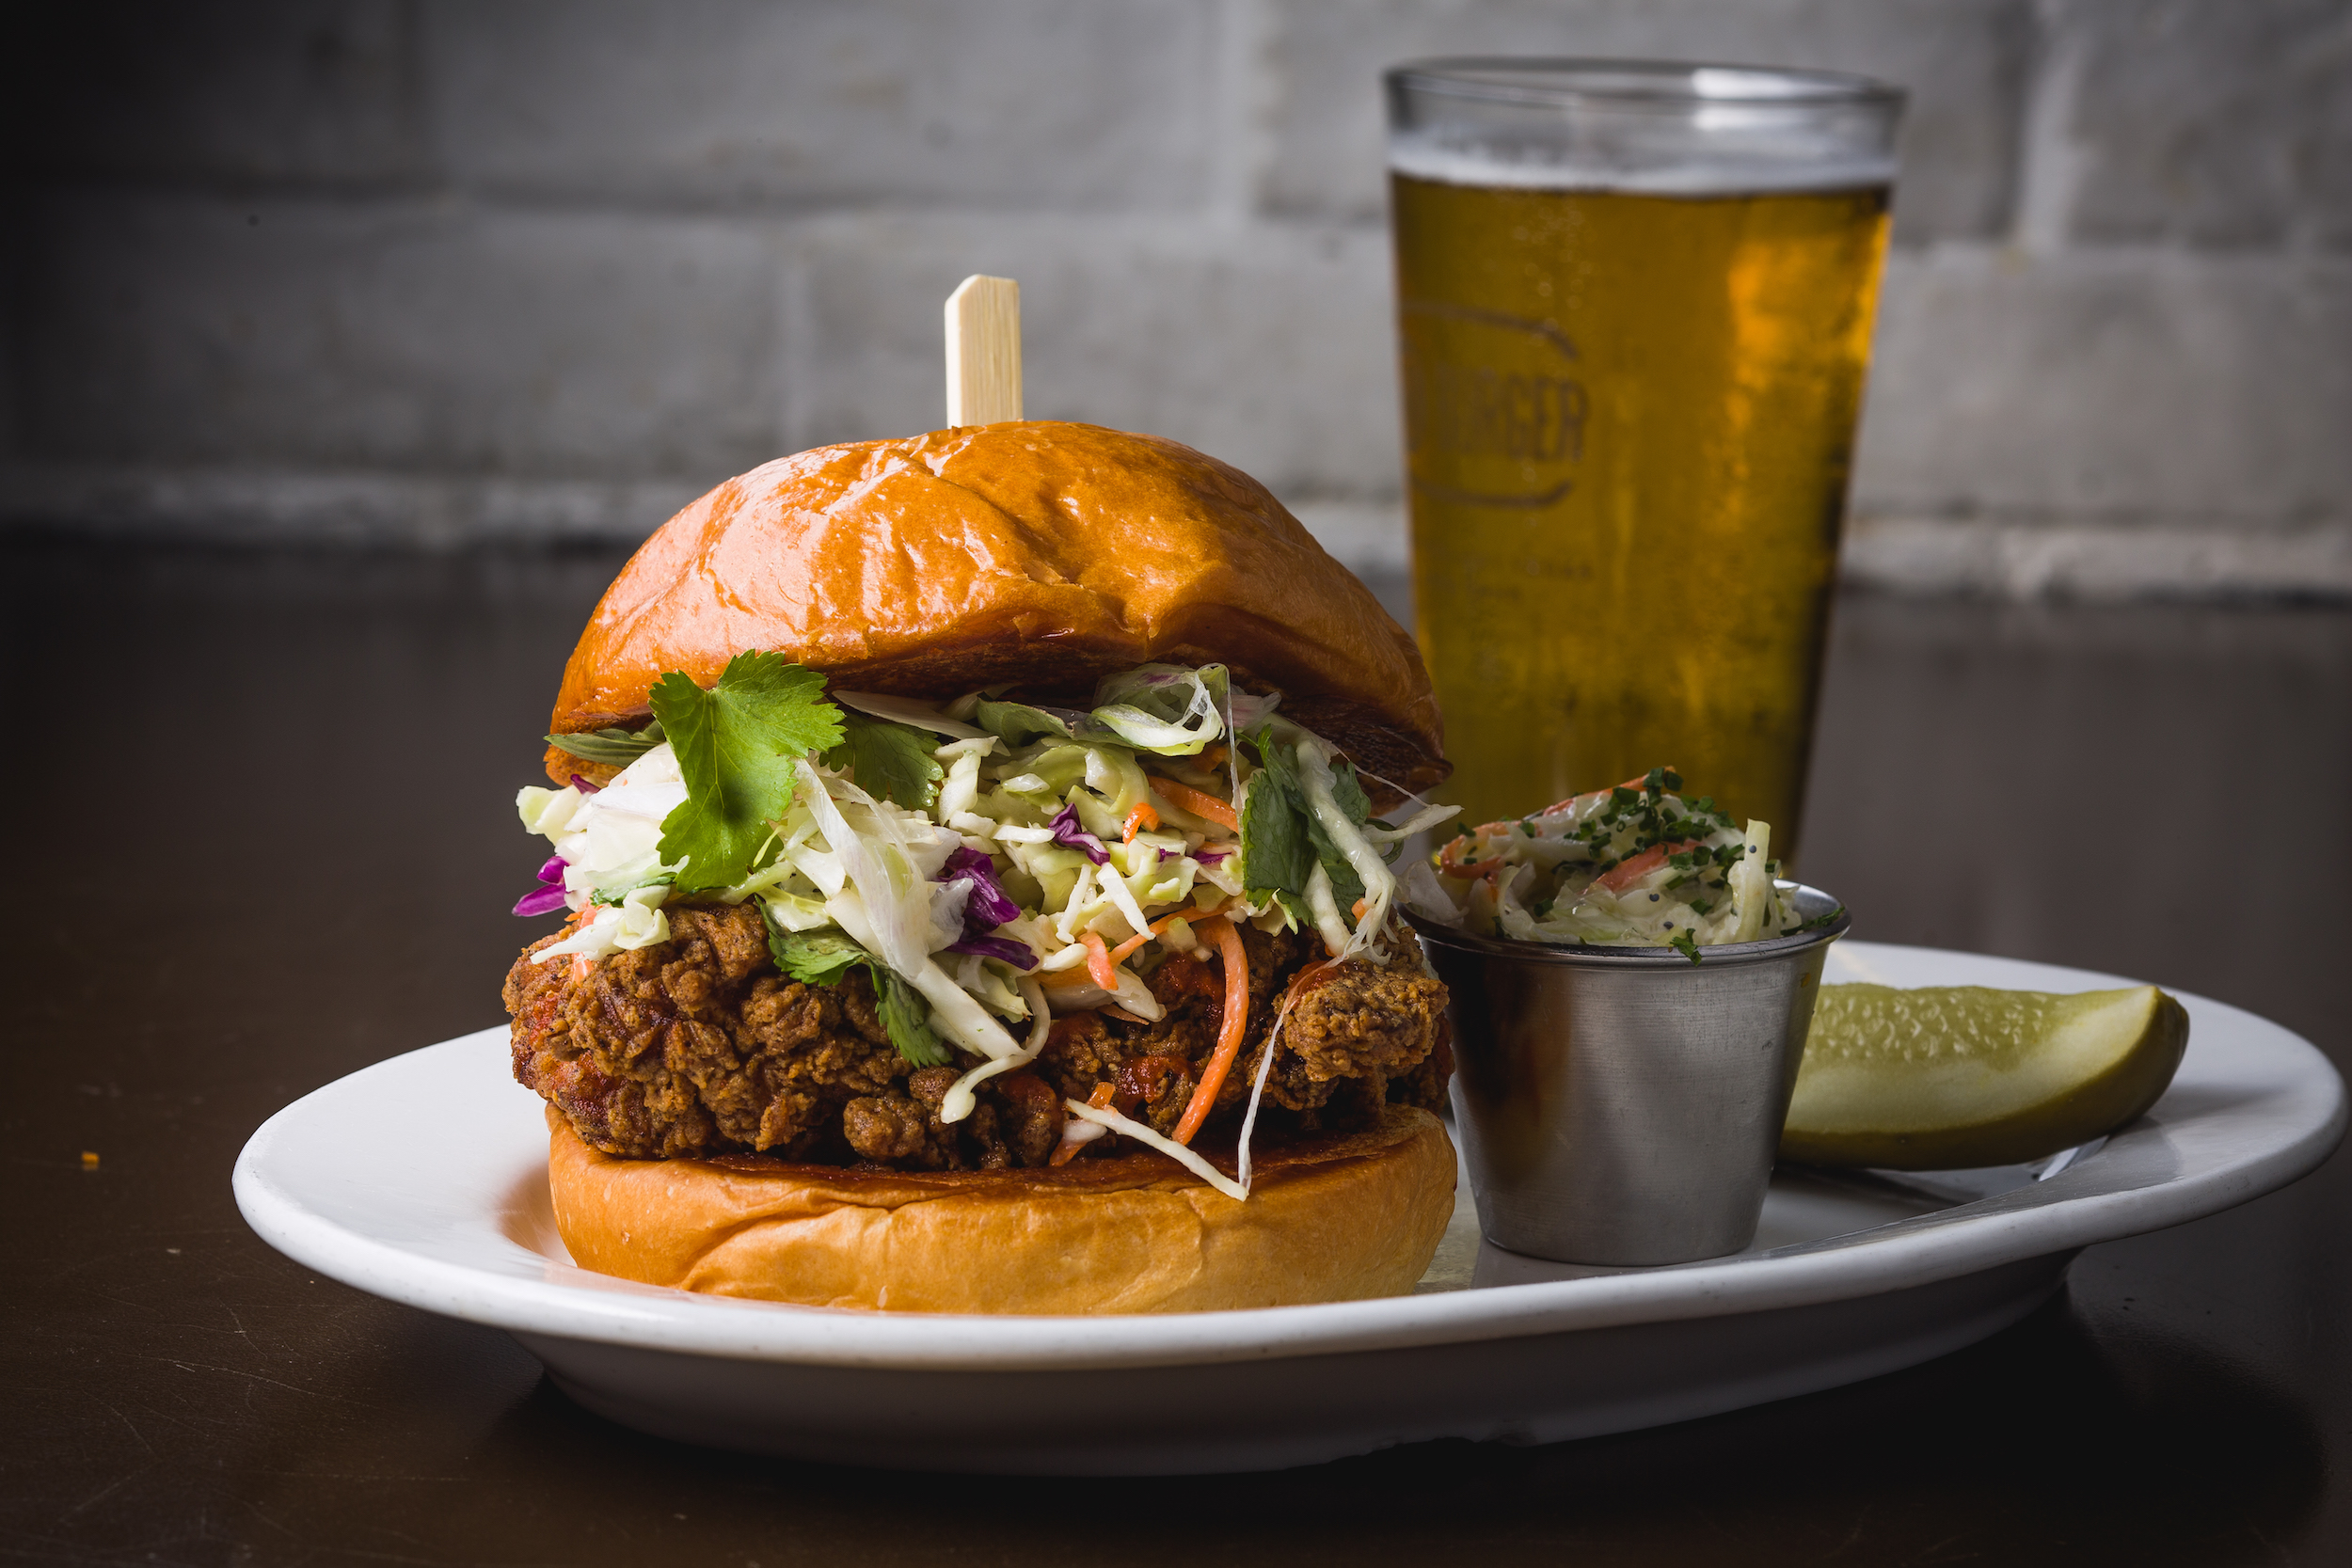 Chef Laurent Tourondel brings new gourmet burgers and spiked shakes to BLT Burger